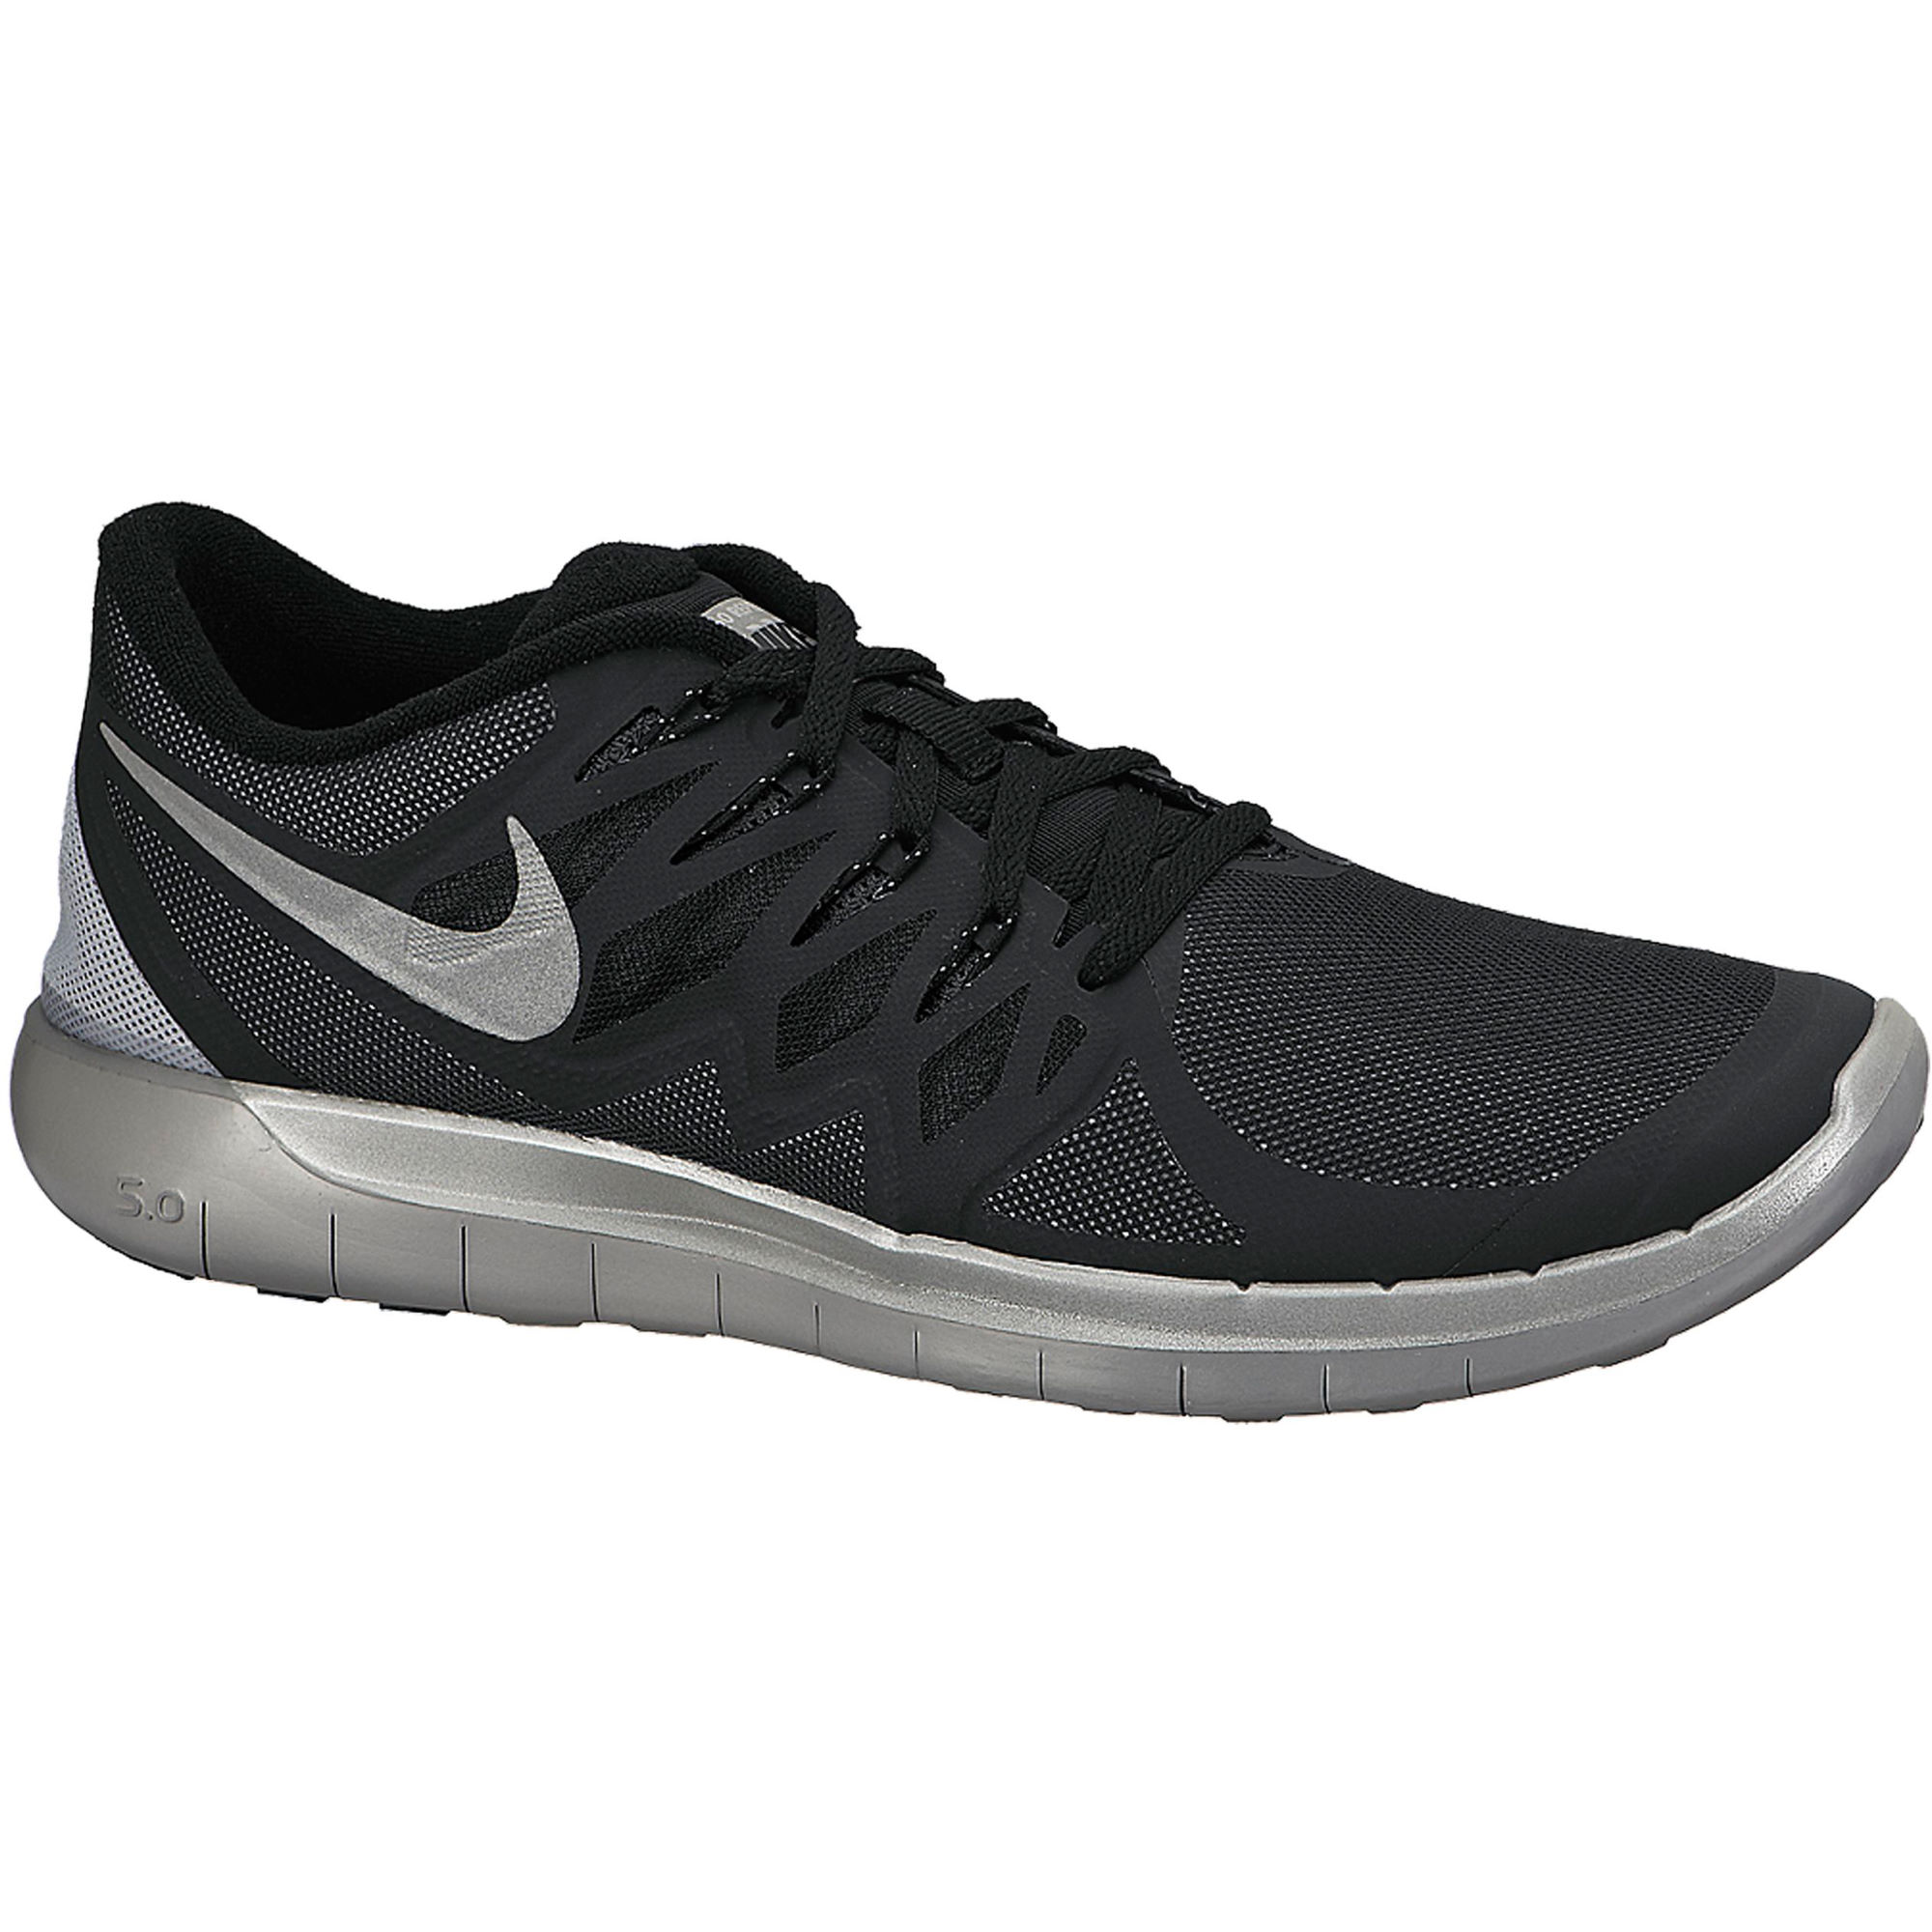 vans sk8 femme salut - Wiggle | Nike Free 5.0 Flash Shoes - HO14 | Training Running Shoes